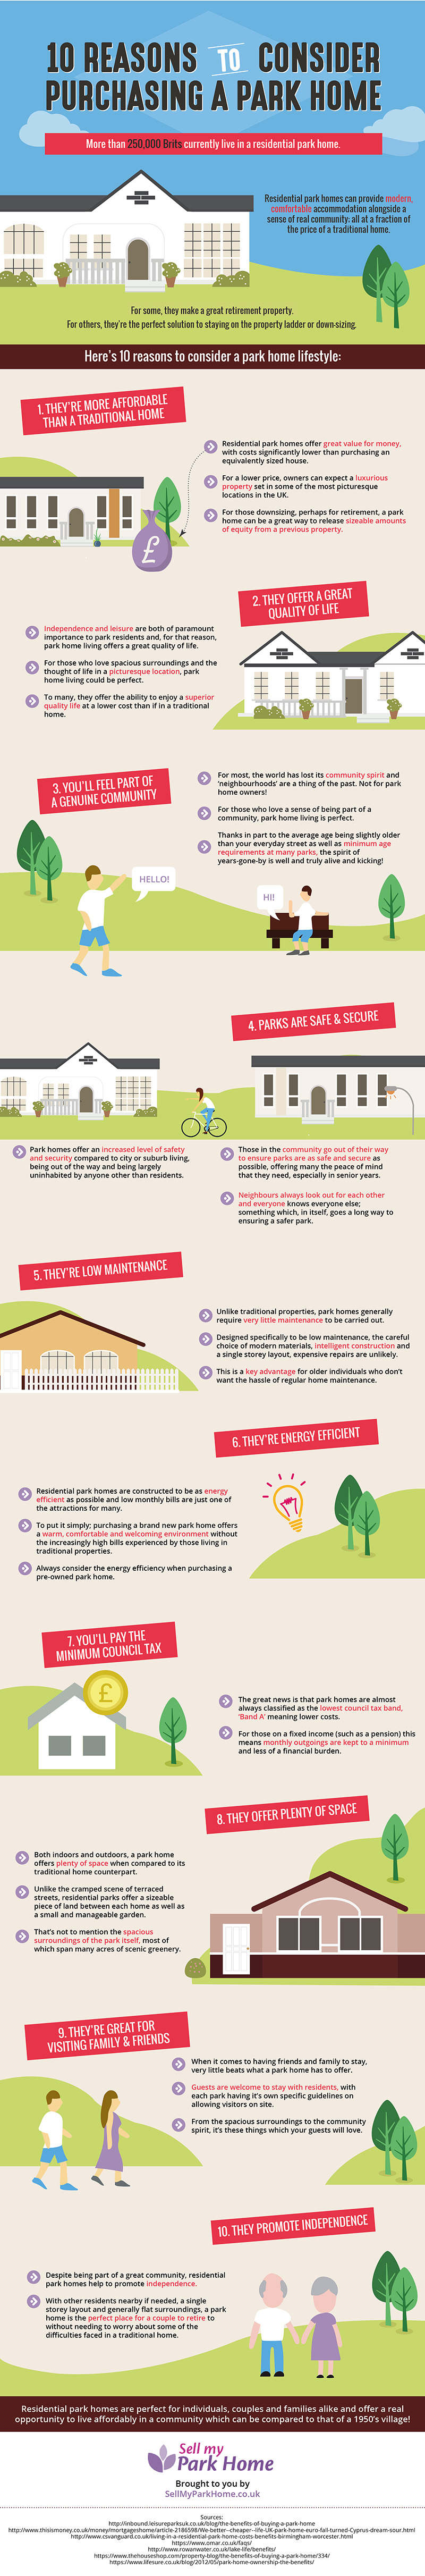 10 resons to buy a park home